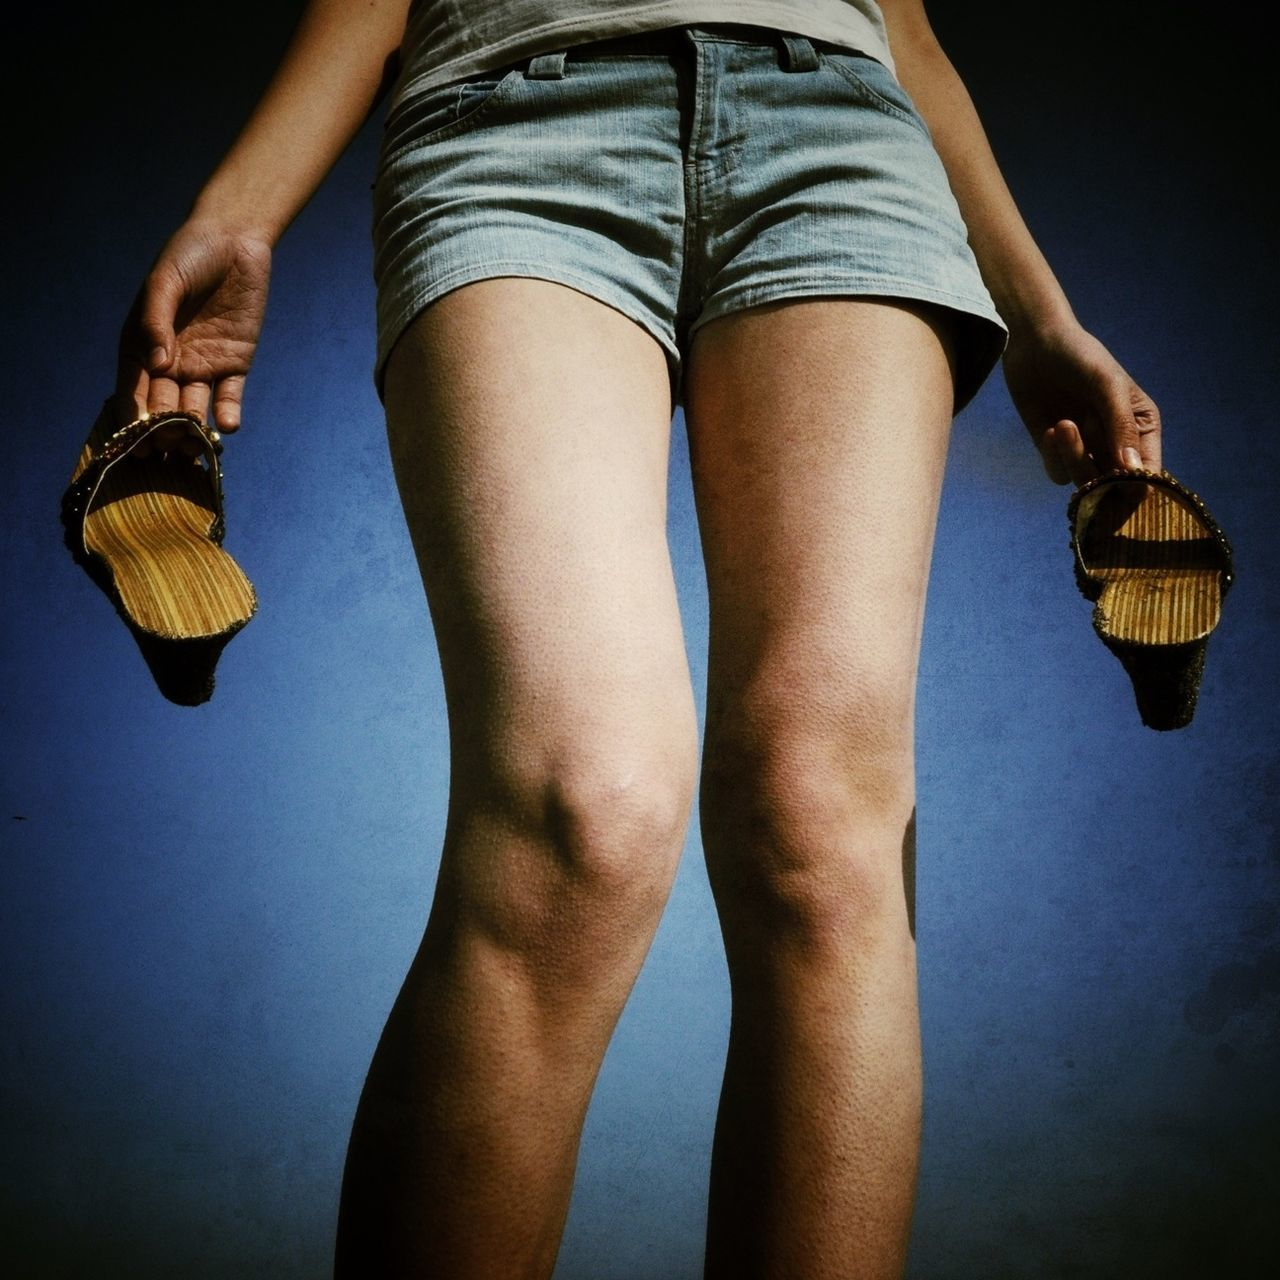 Midsection of woman in hot pants holding heels against blue sky